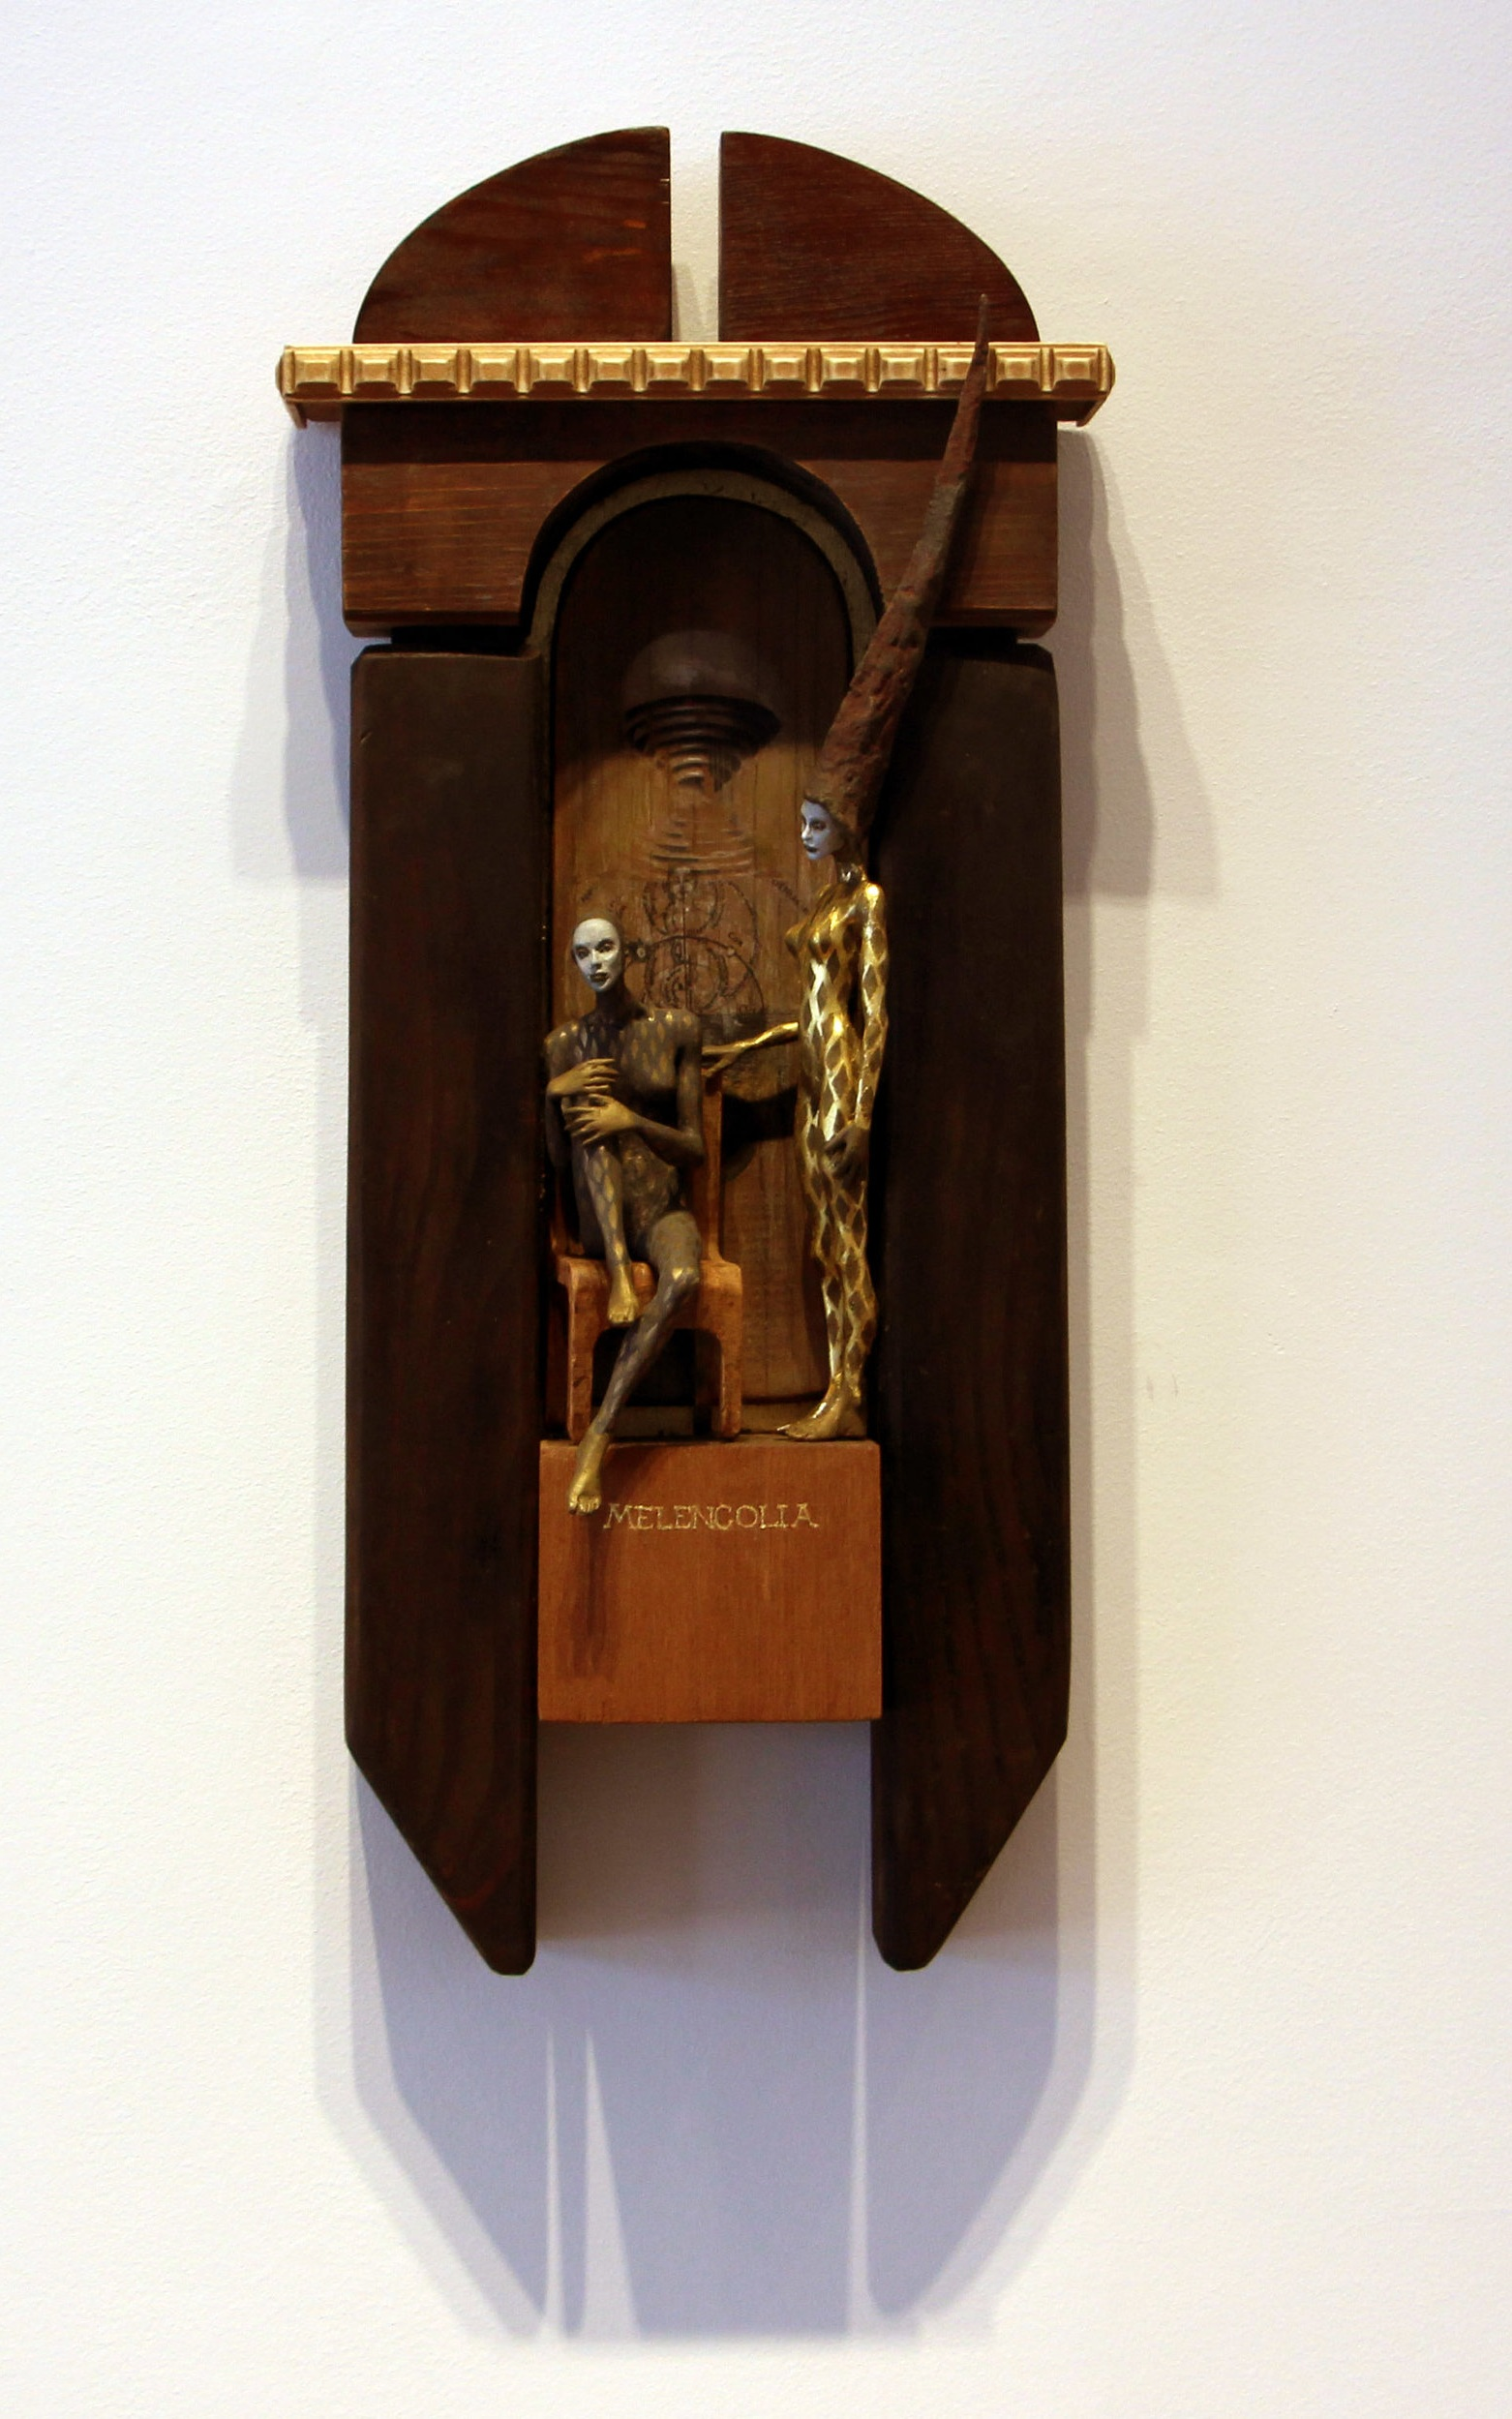 Melancholy   2015  bronze and wood  28 x 11 x 4.5 inches; 71.1 x 27.9 x 11.4 centimeters